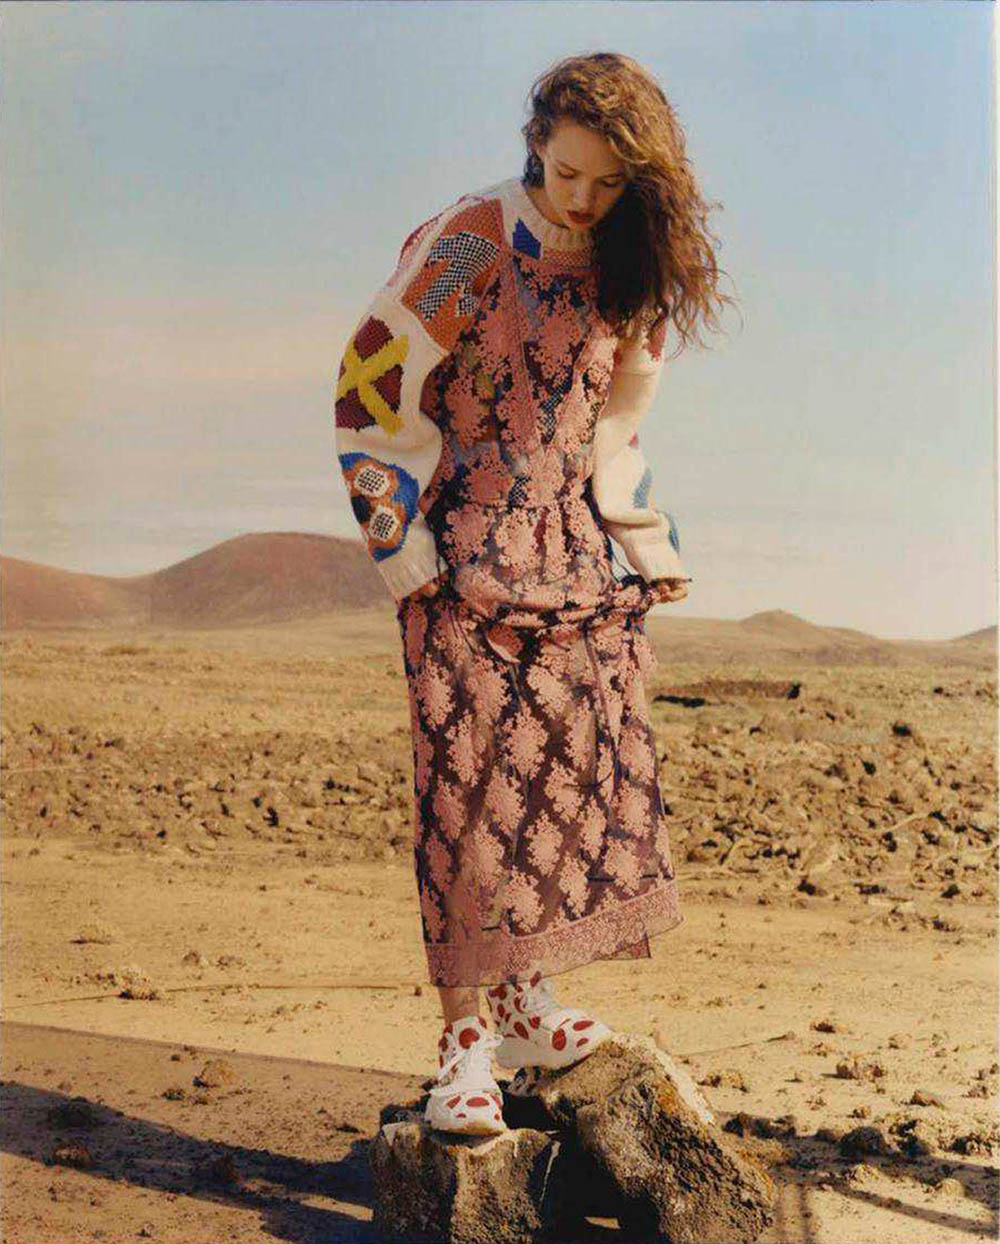 Adrienne Jüliger by Jens Ingvarsson for Vogue Spain August 2018